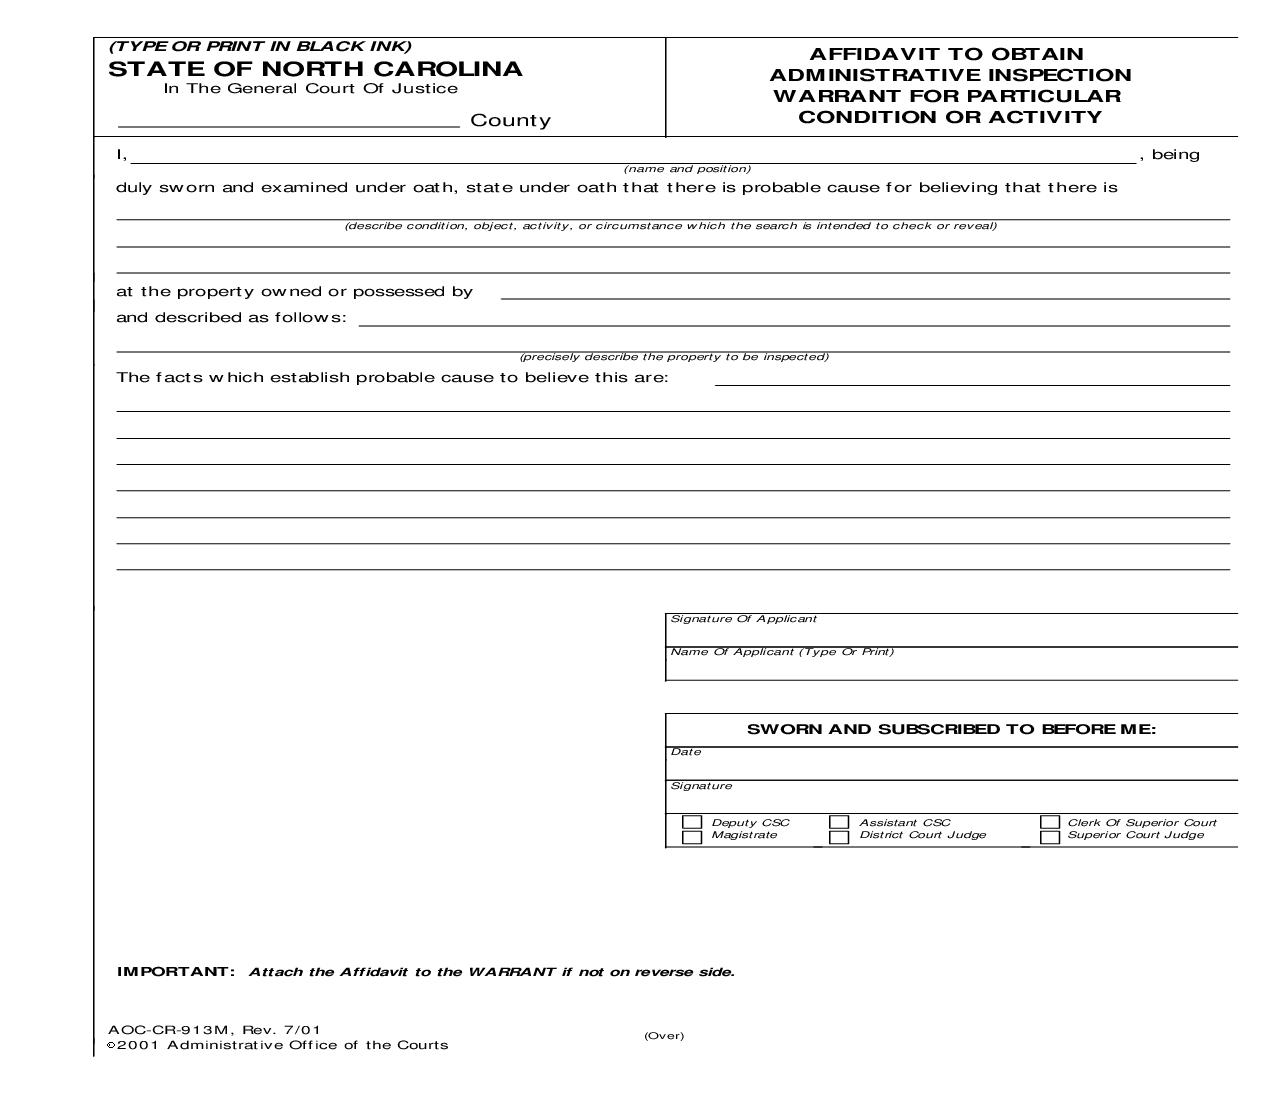 Affidavit To Obtain Administrative Inspection Warrant For Particular Condition Or Activity {CR-913M} | Pdf Fpdf Doc Docx | North Carolina